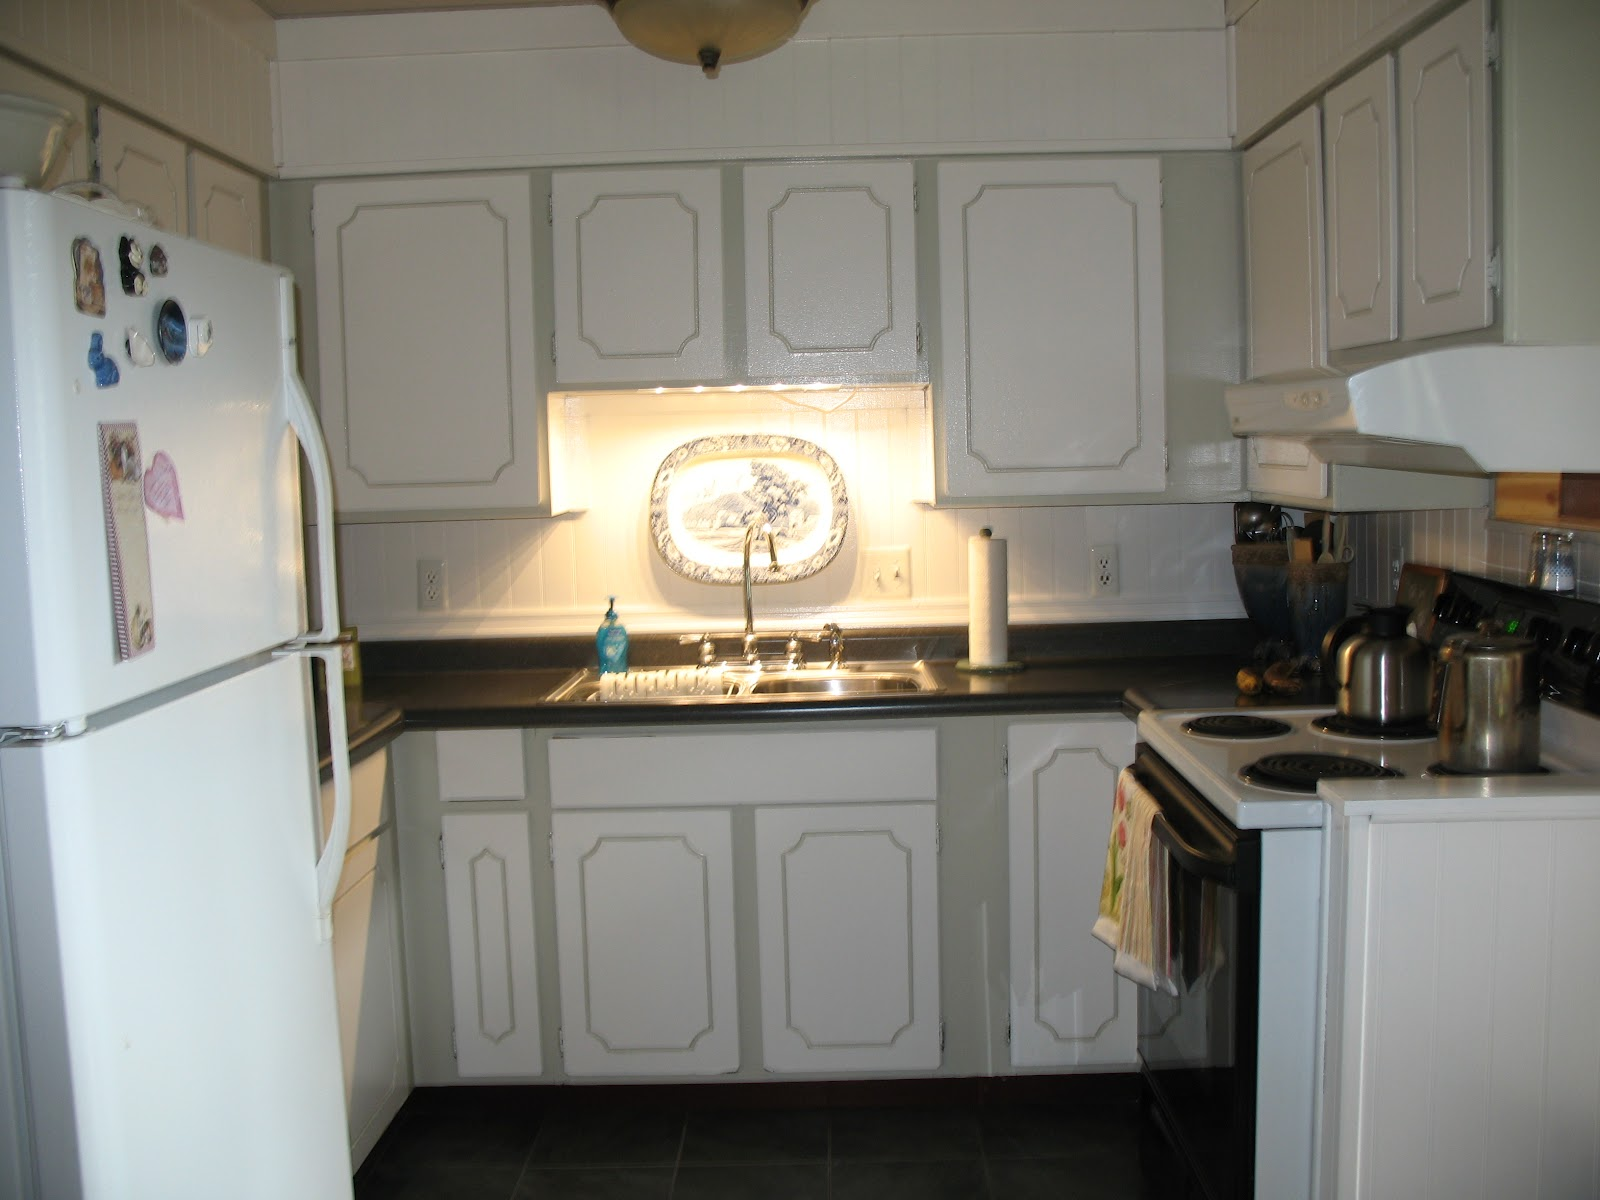 The appealing Before and after kitchen remodels photo